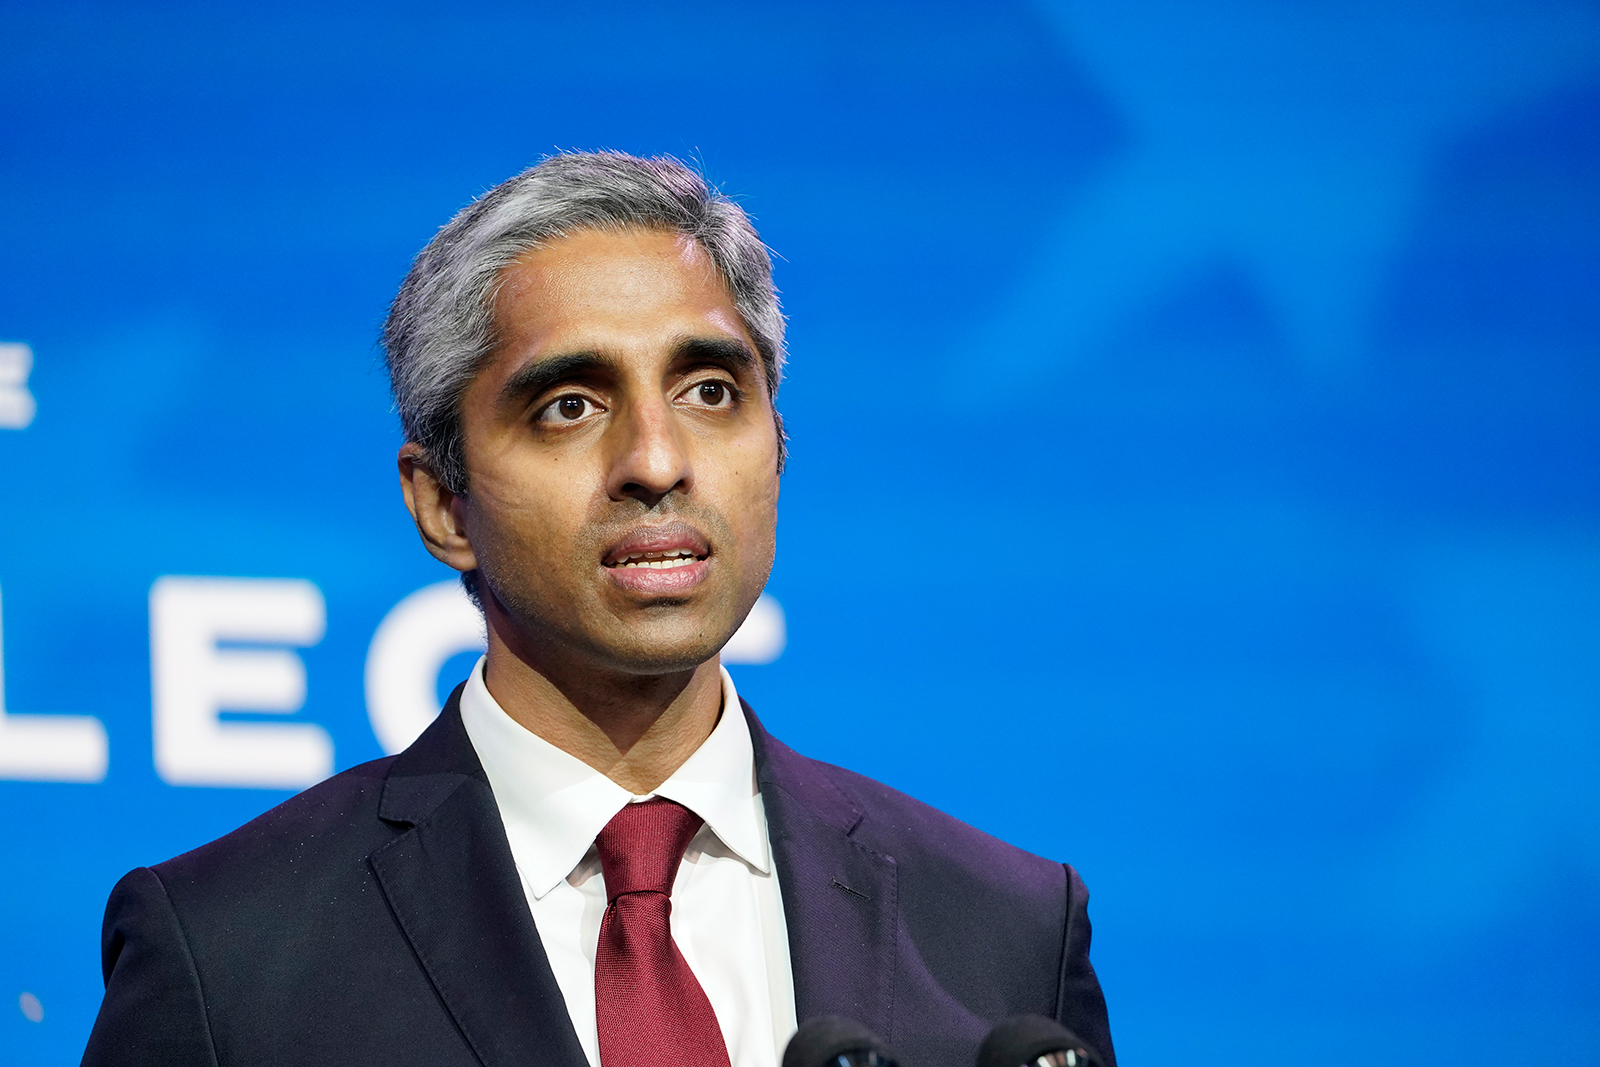 Dr. Vivek Murthy speaks during an event at The Queen Theater in Wilmington, Delaware, on December 8, 2020.